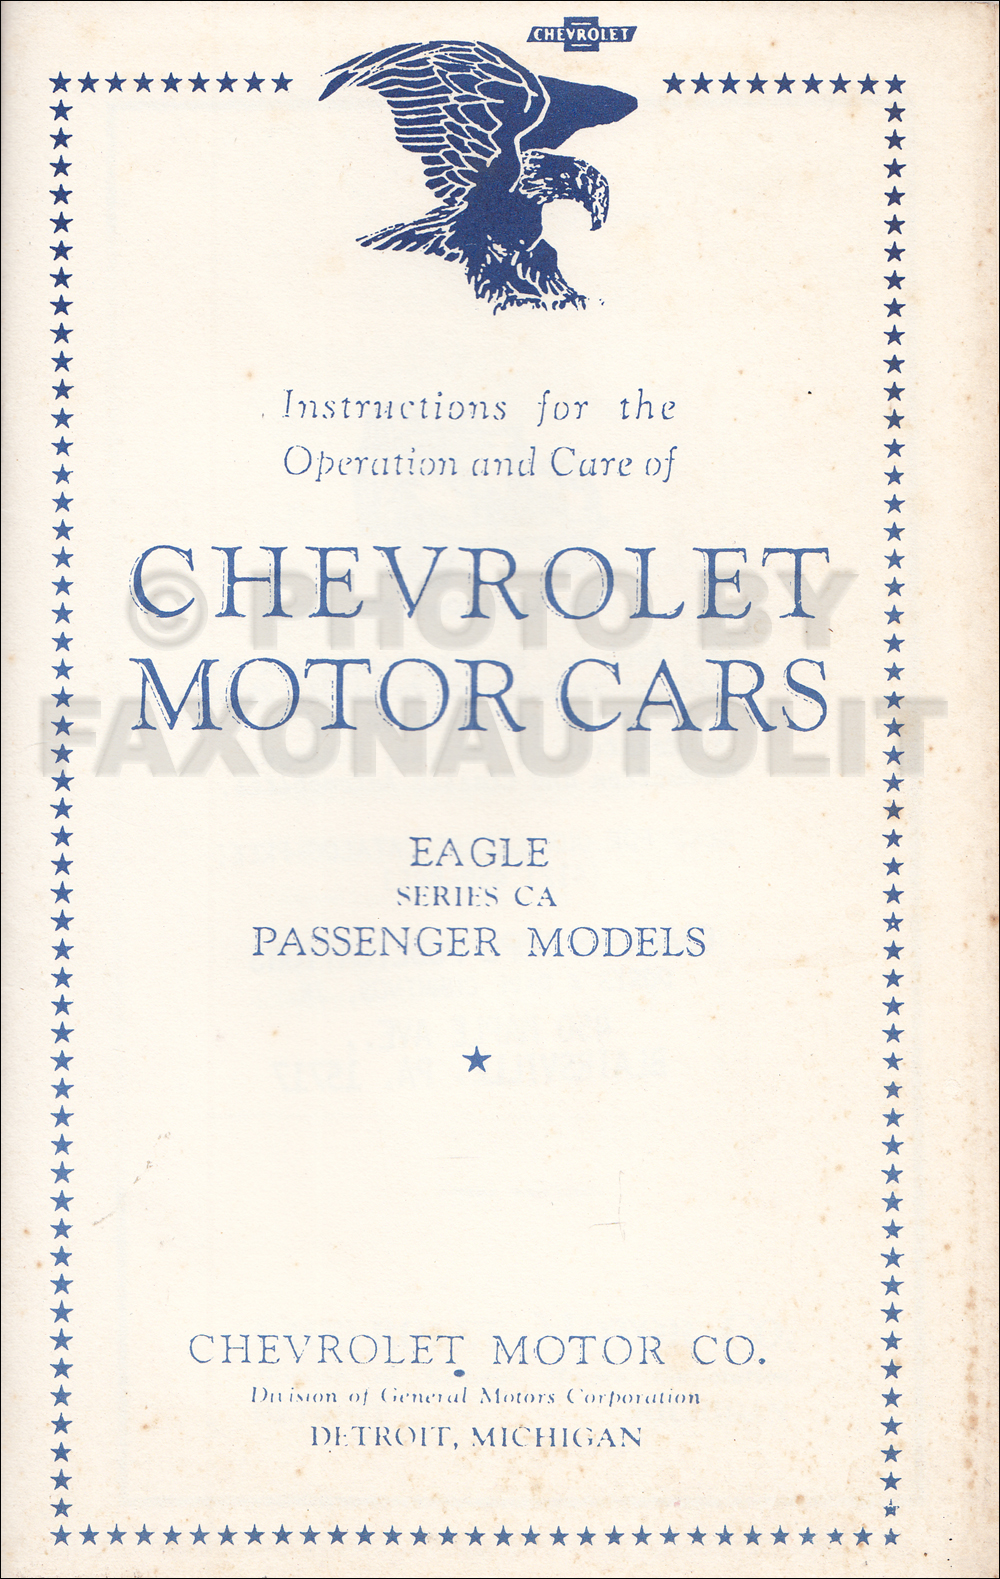 1933 Chevrolet Eagle Car Reprint Owner's Manual December '32 Edition